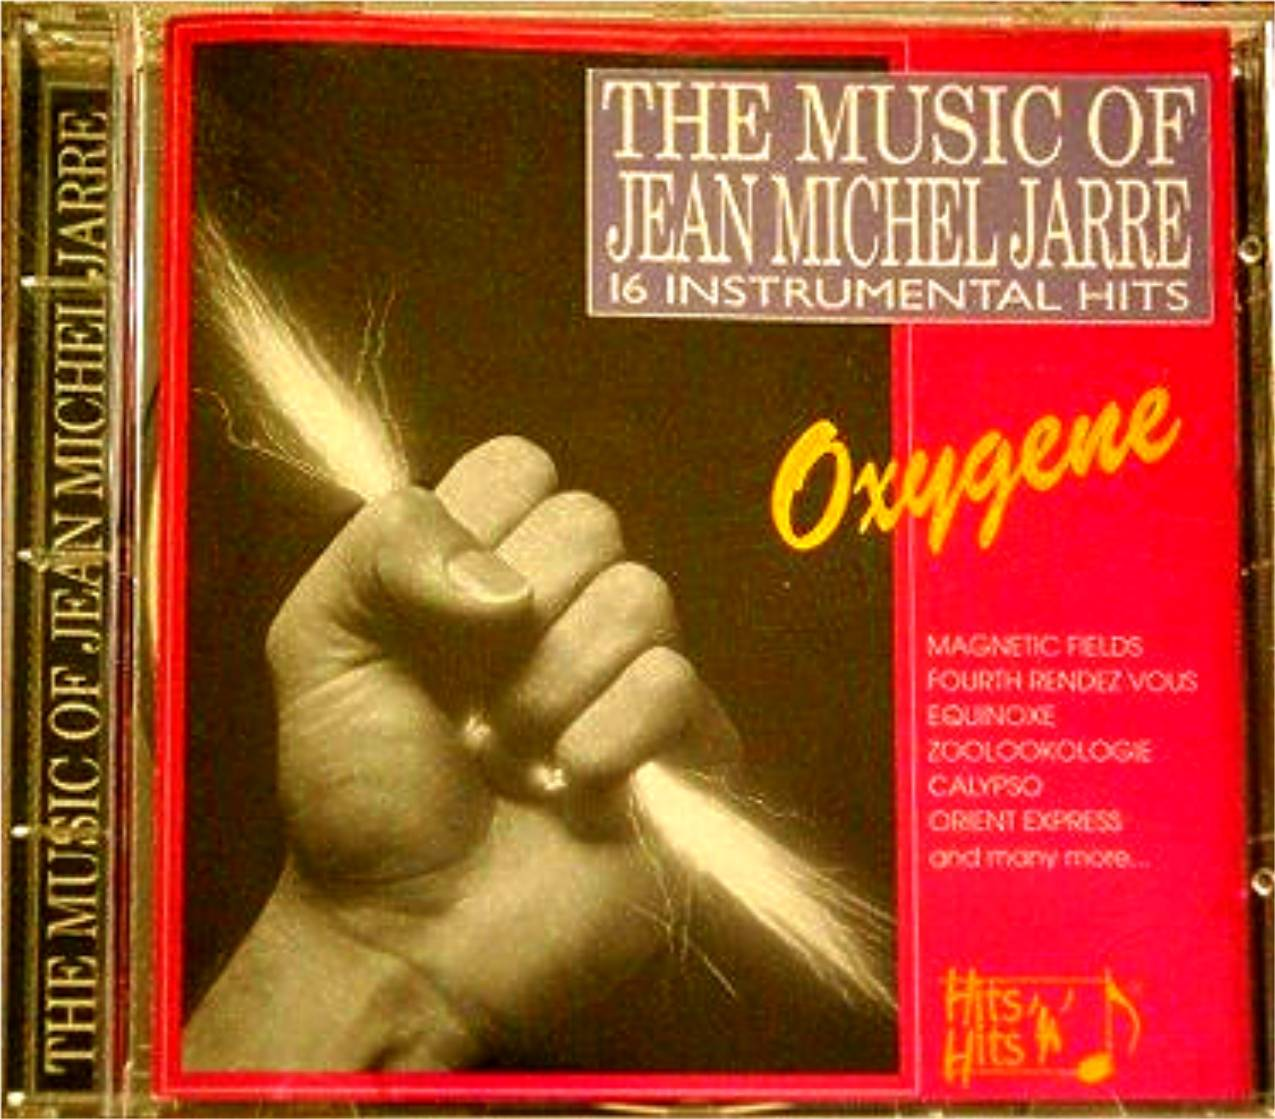 The Music of Jean Michel Jarre